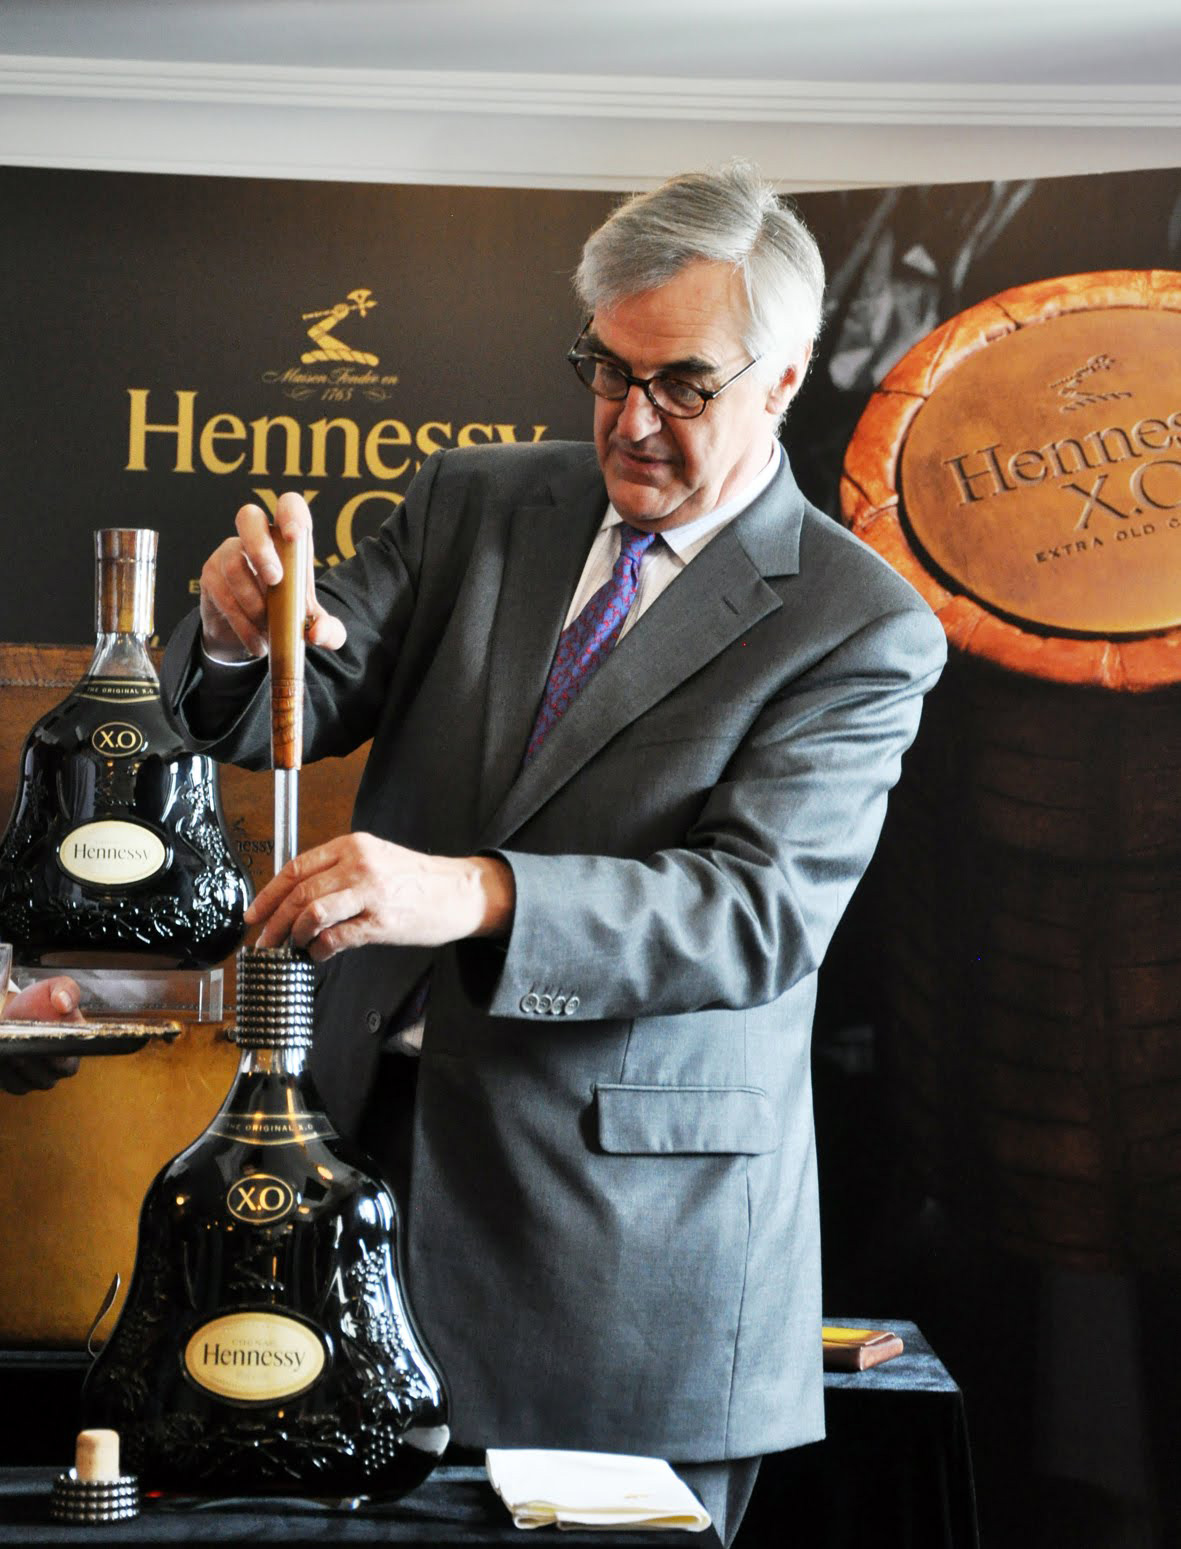 Limited Edition X.O Mathusalem Cognac from Hennessy